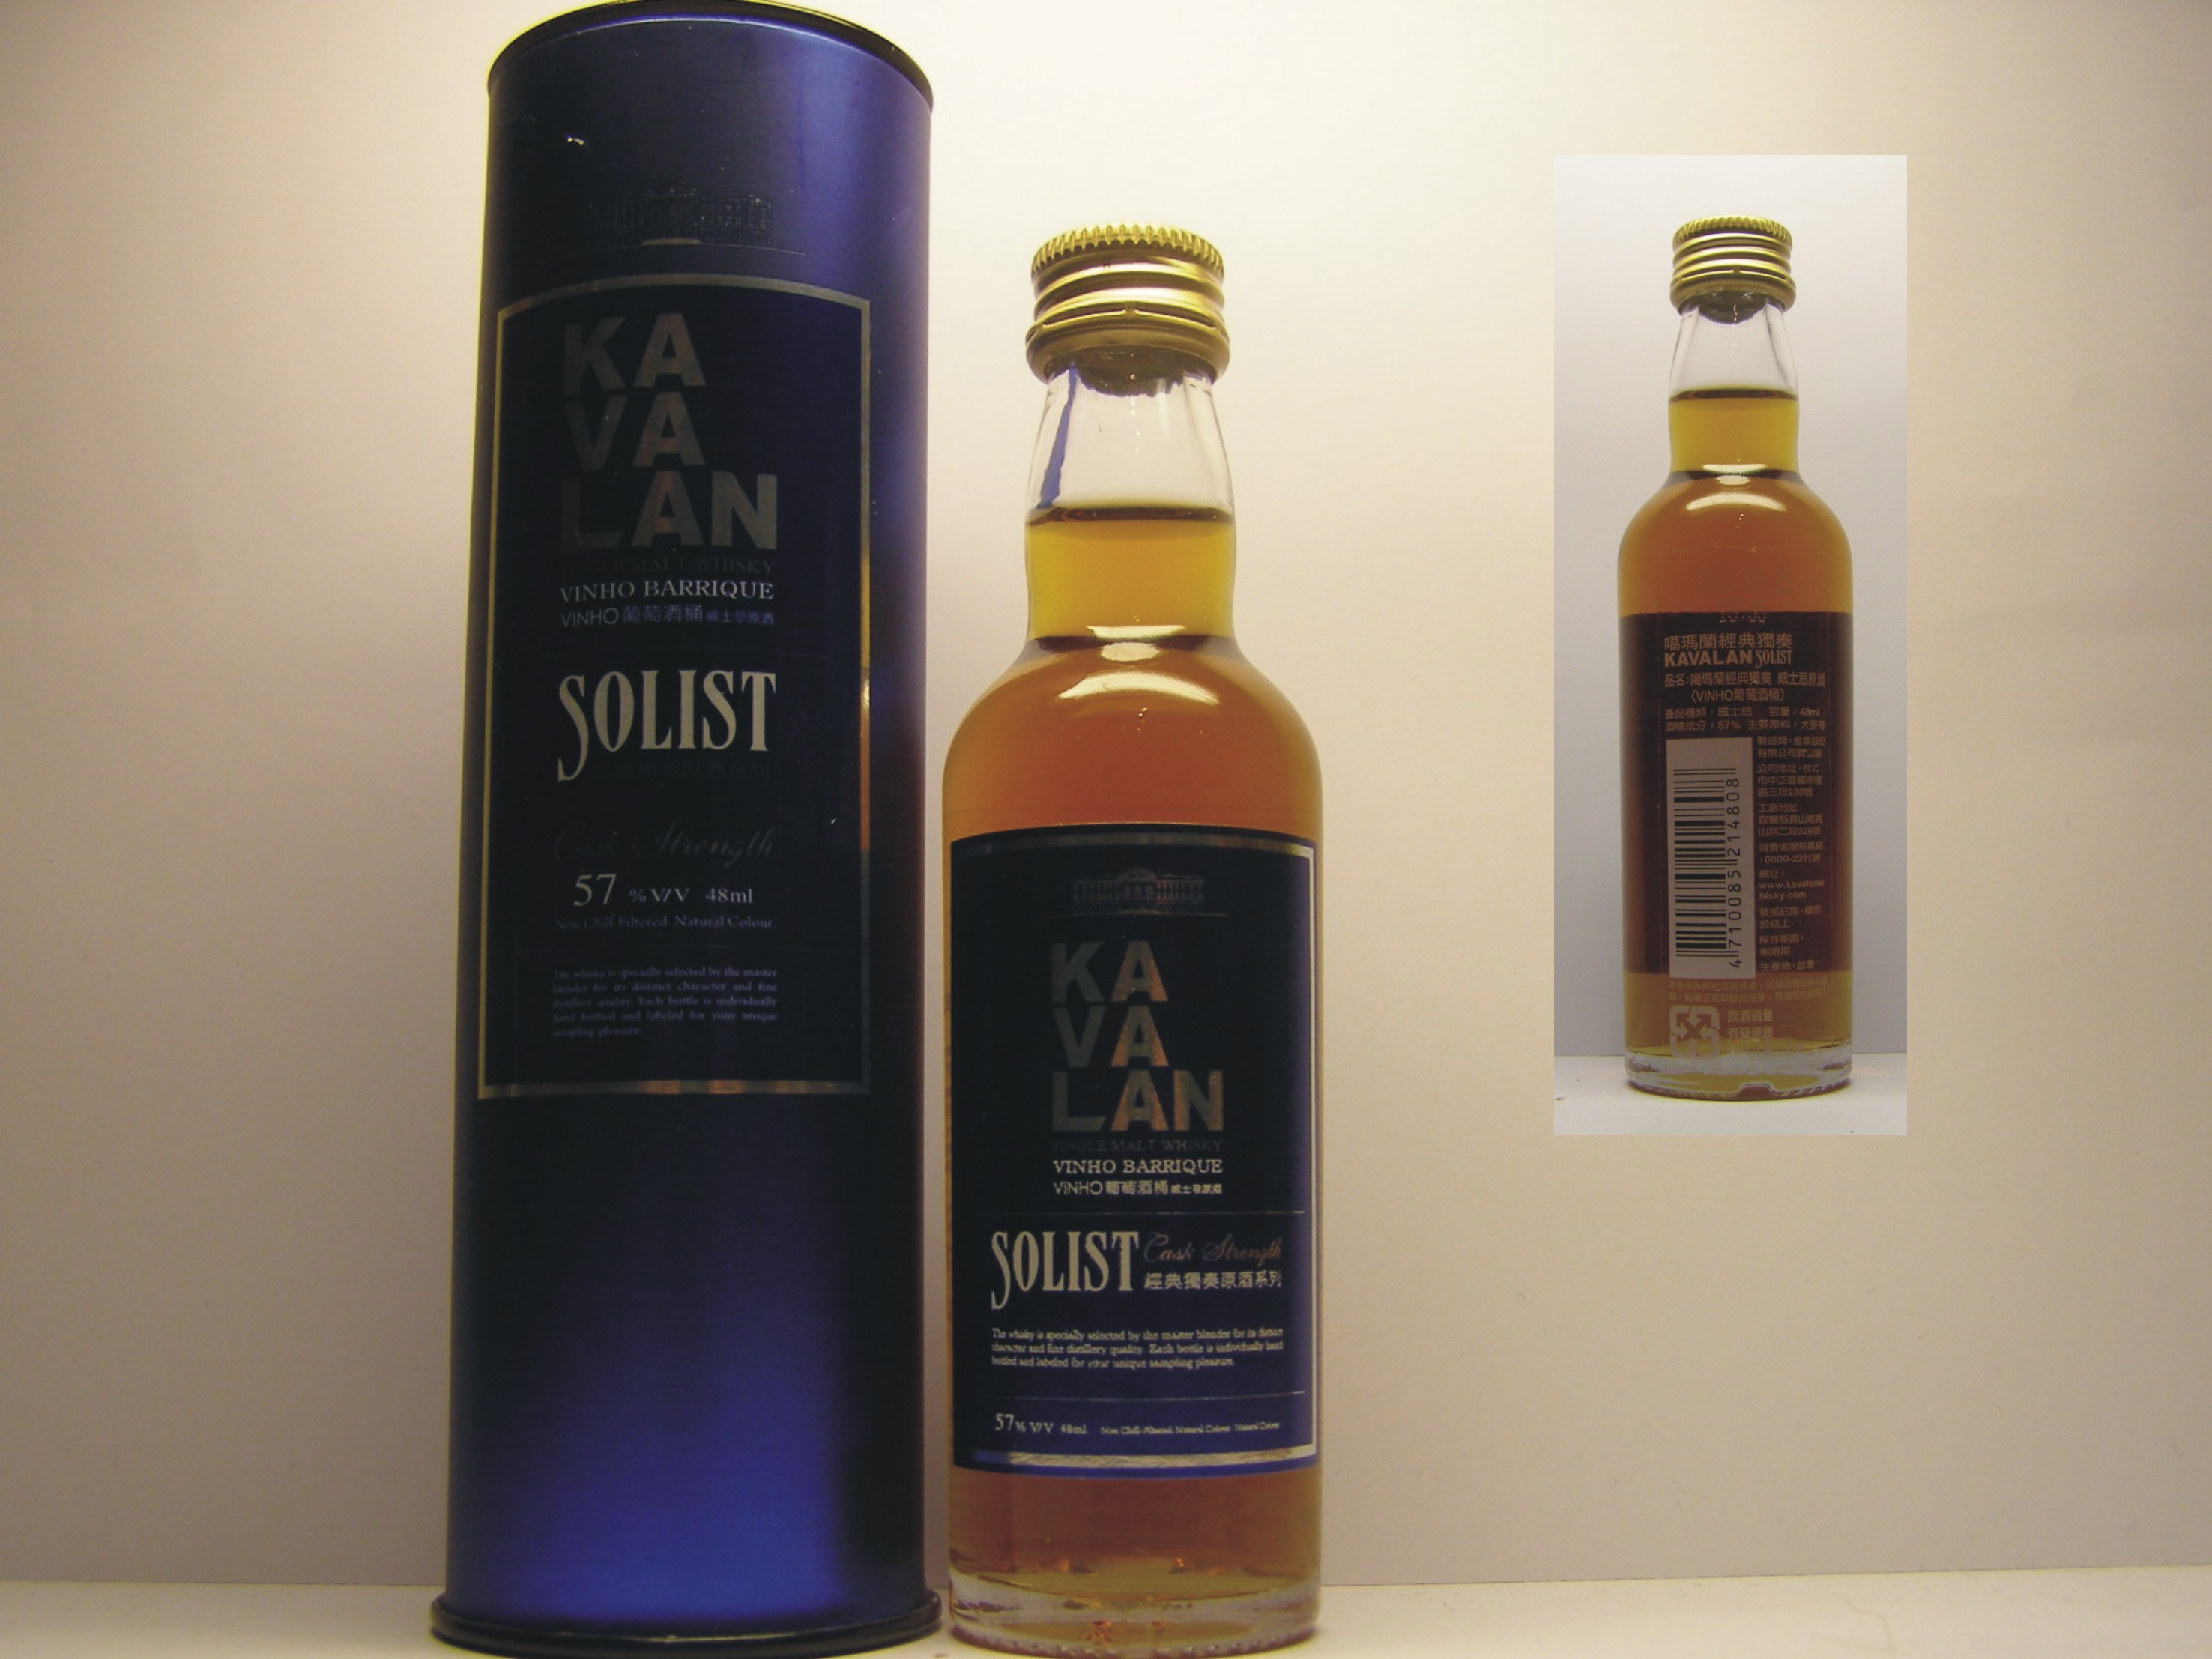 KAVALAN Solist Vinho Barrique Single Malt Whisky